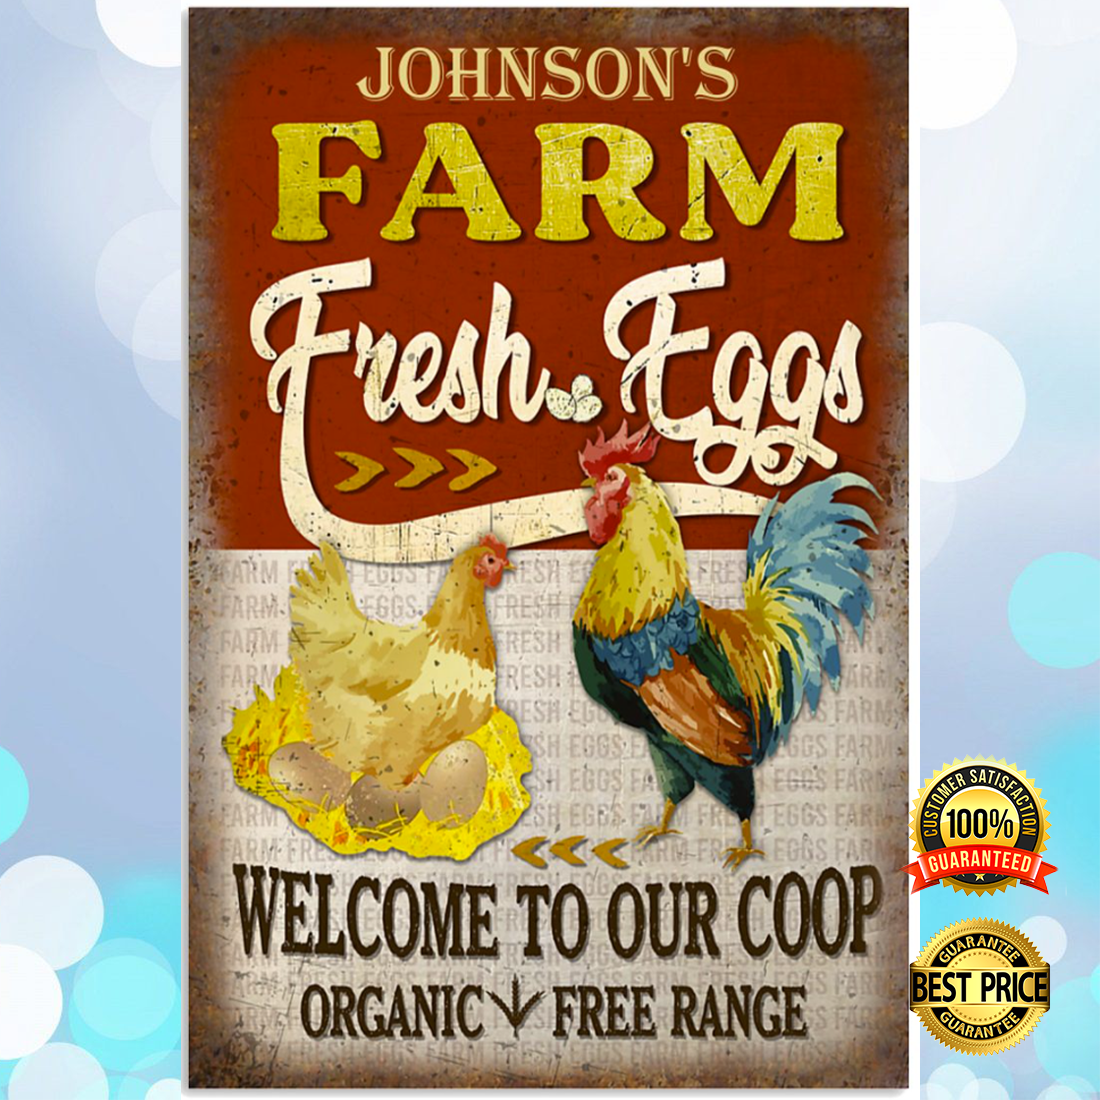 Personalized farm fresh eggs welcome to our coop organic free range poster 5